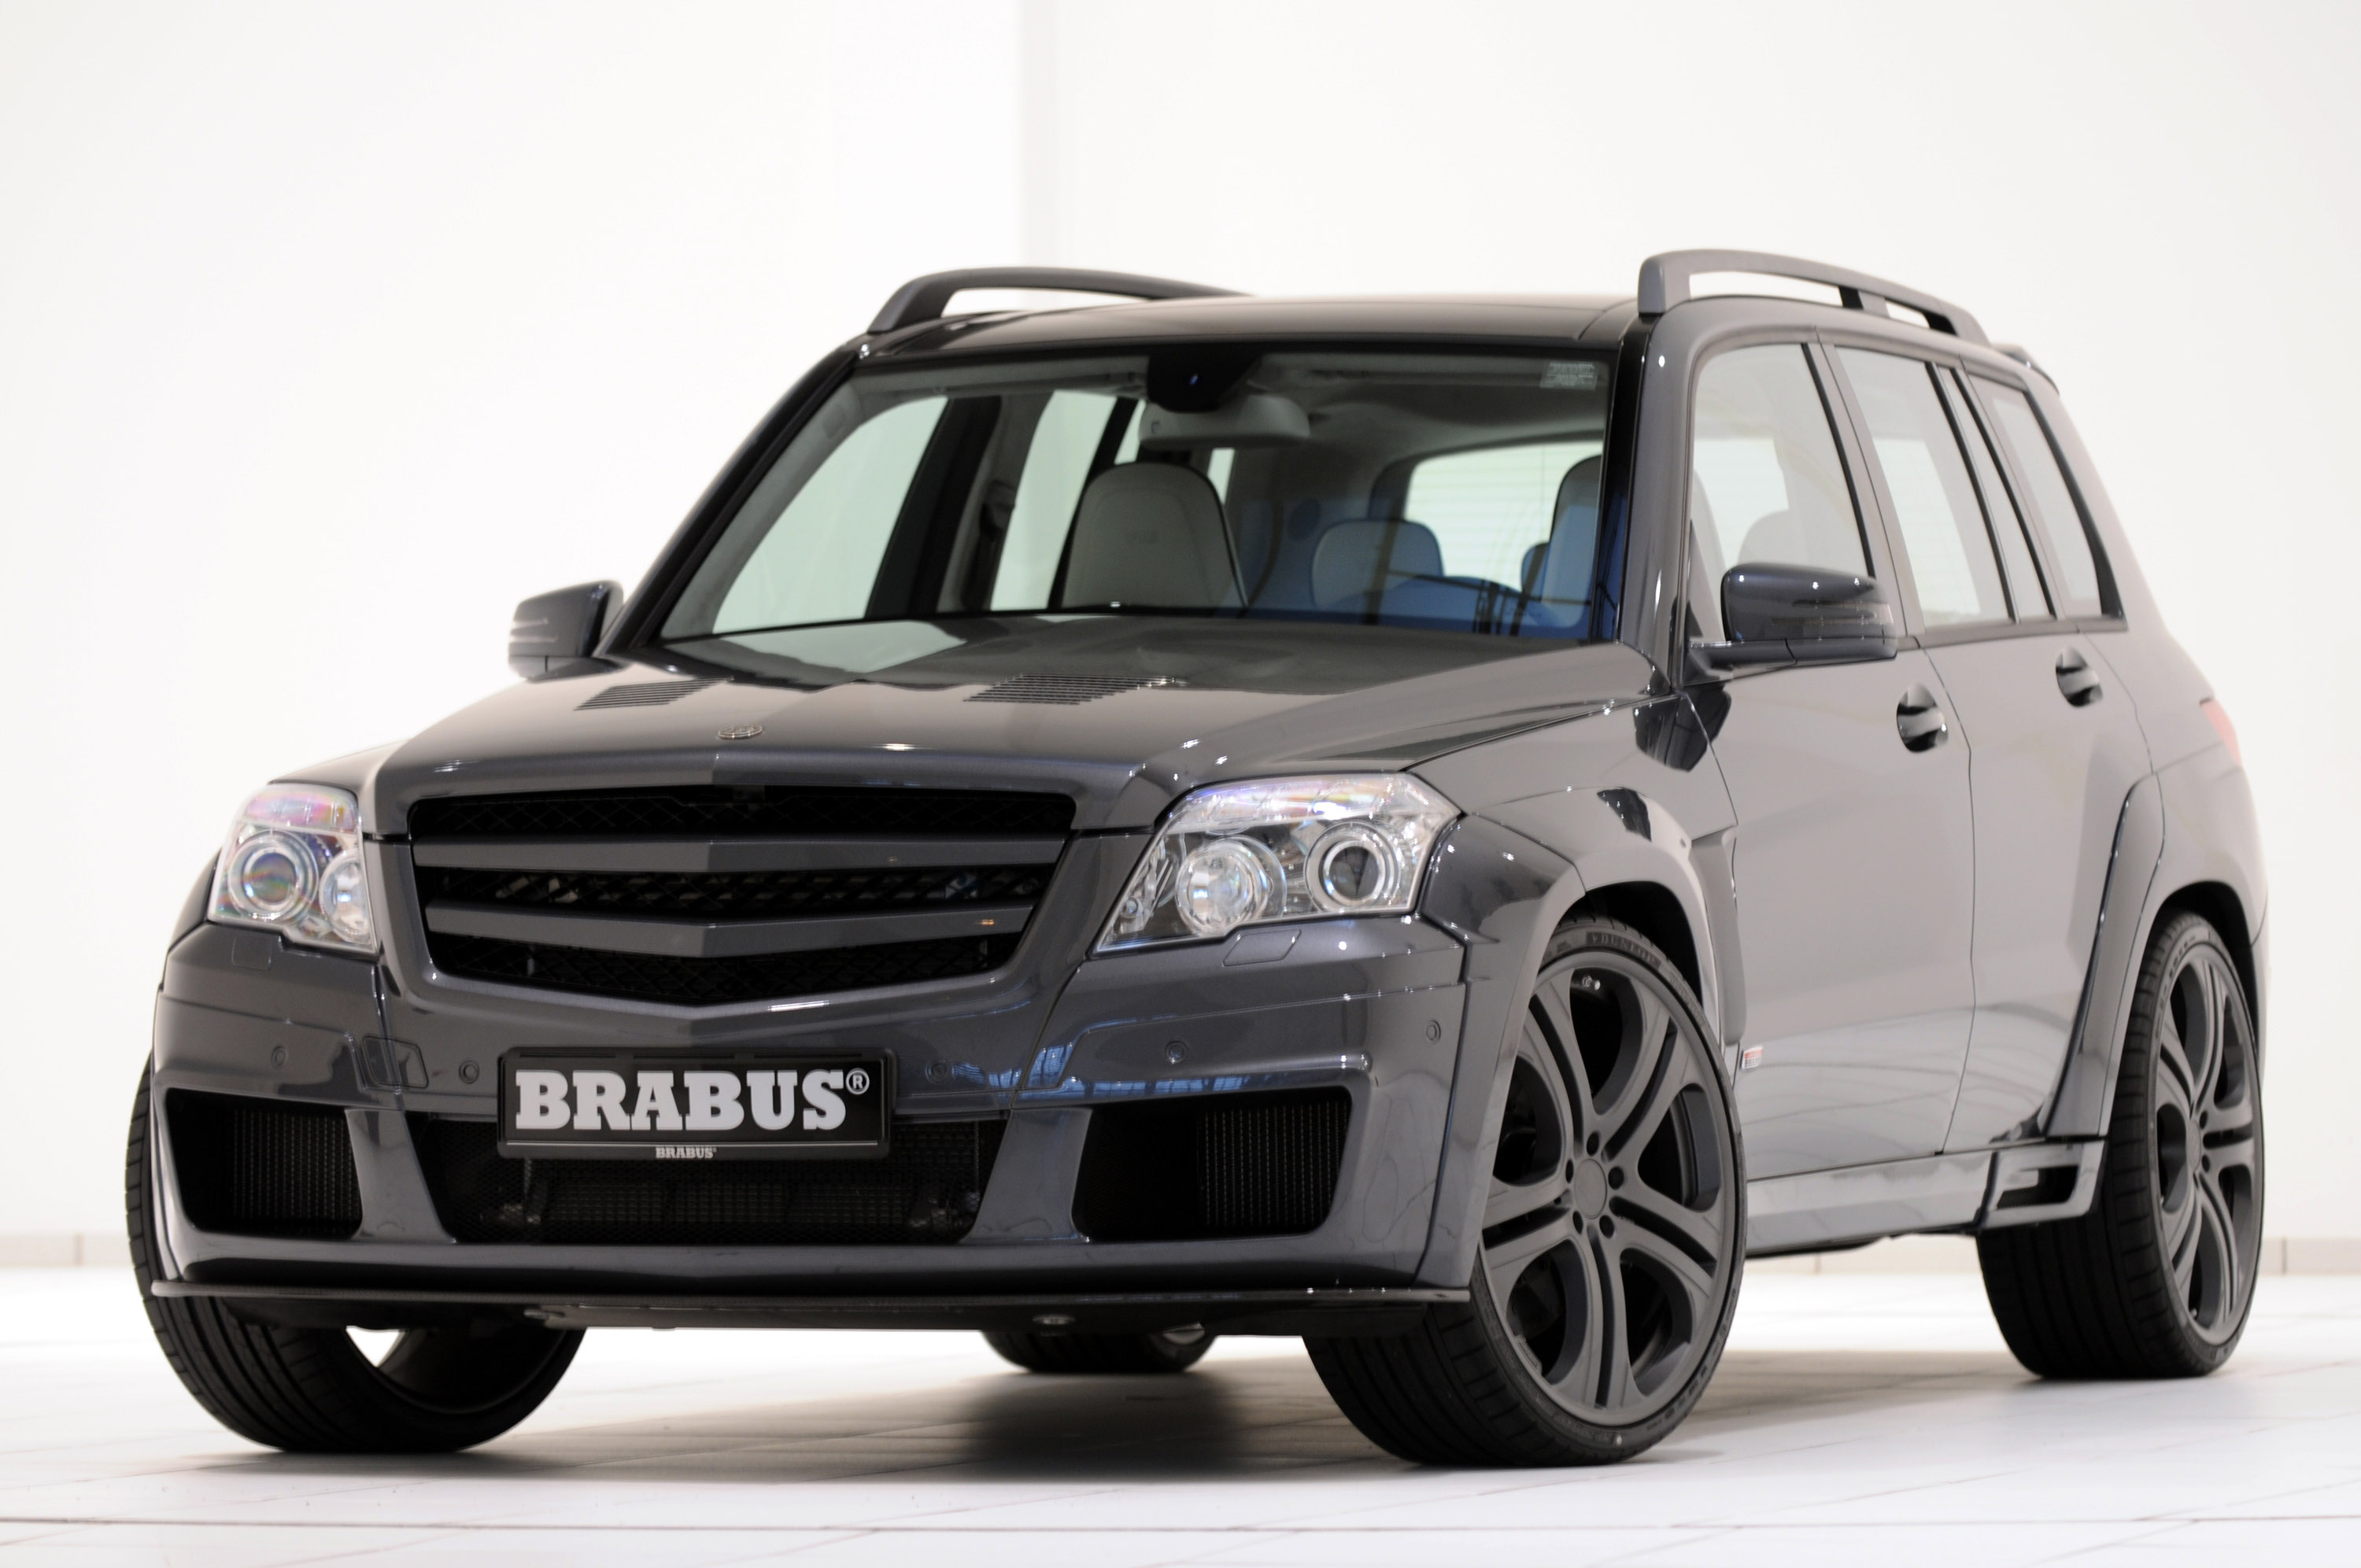 BRABUS GLK V12 strikes as the fastest SUV on the planet